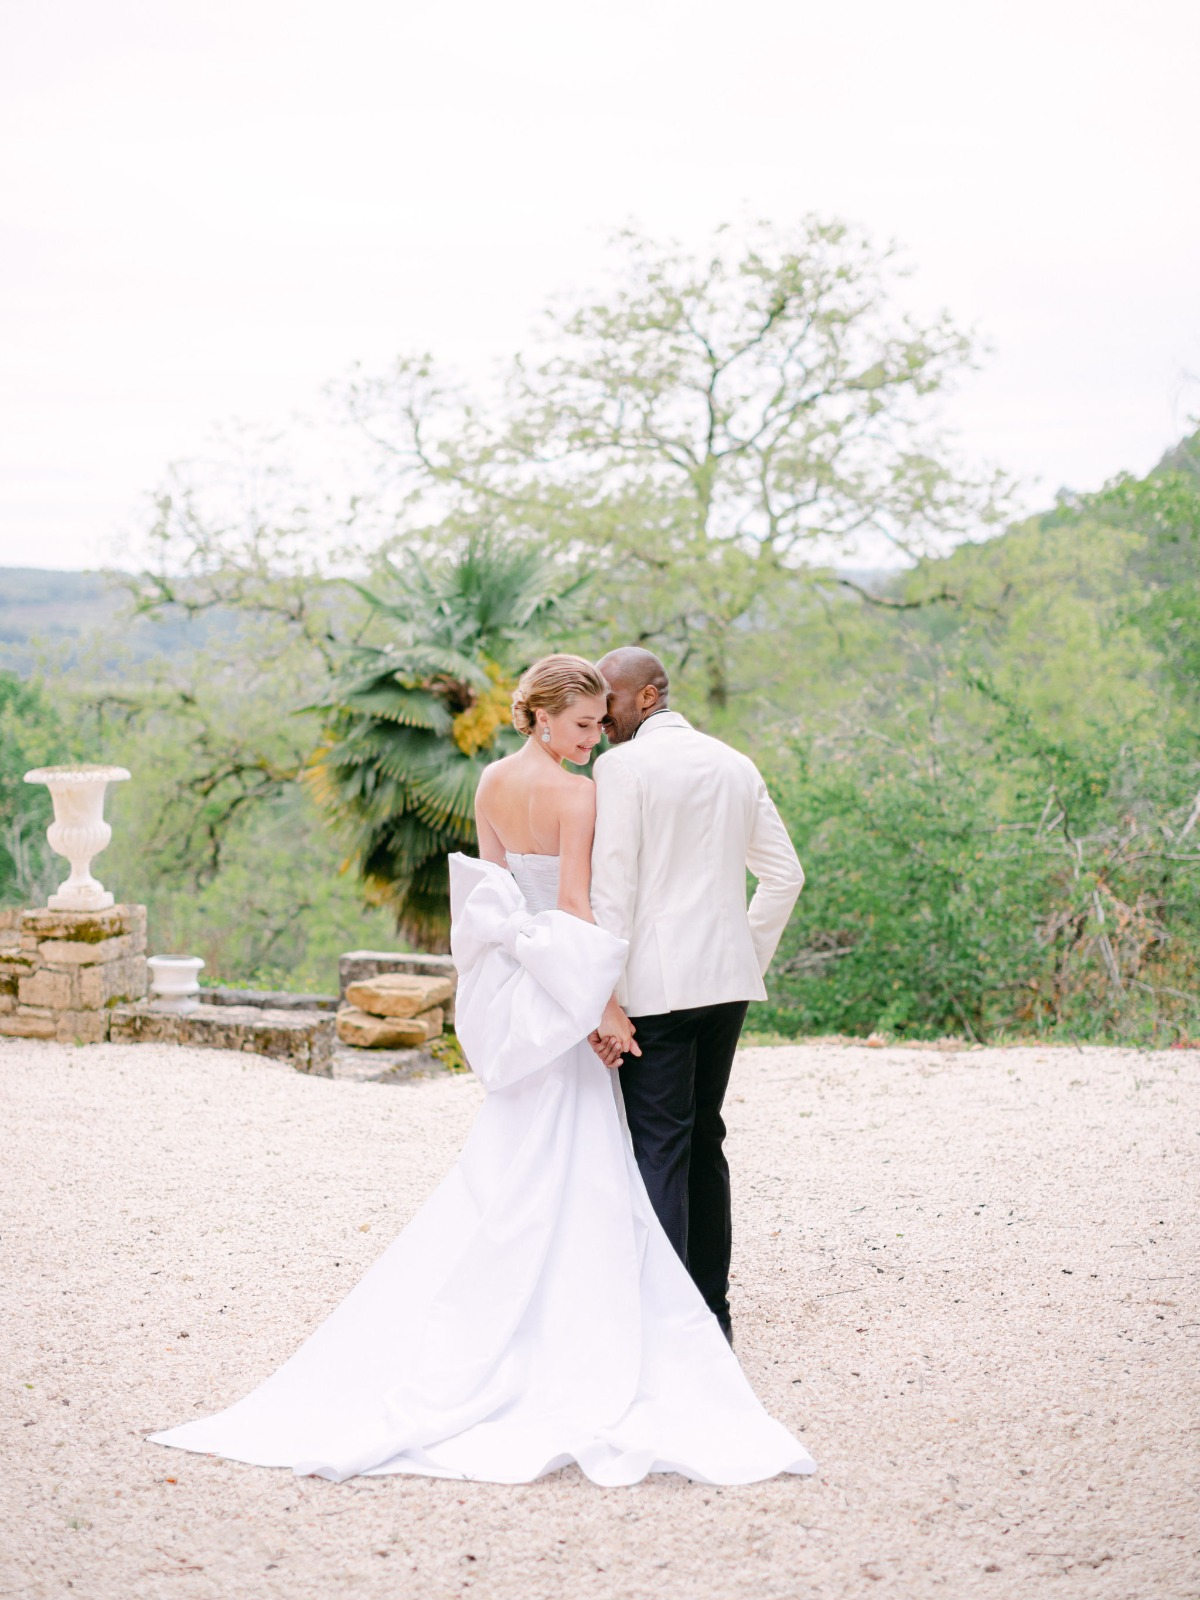 Modern Inspiration Shoot In A Little-Known French Wedding Destination